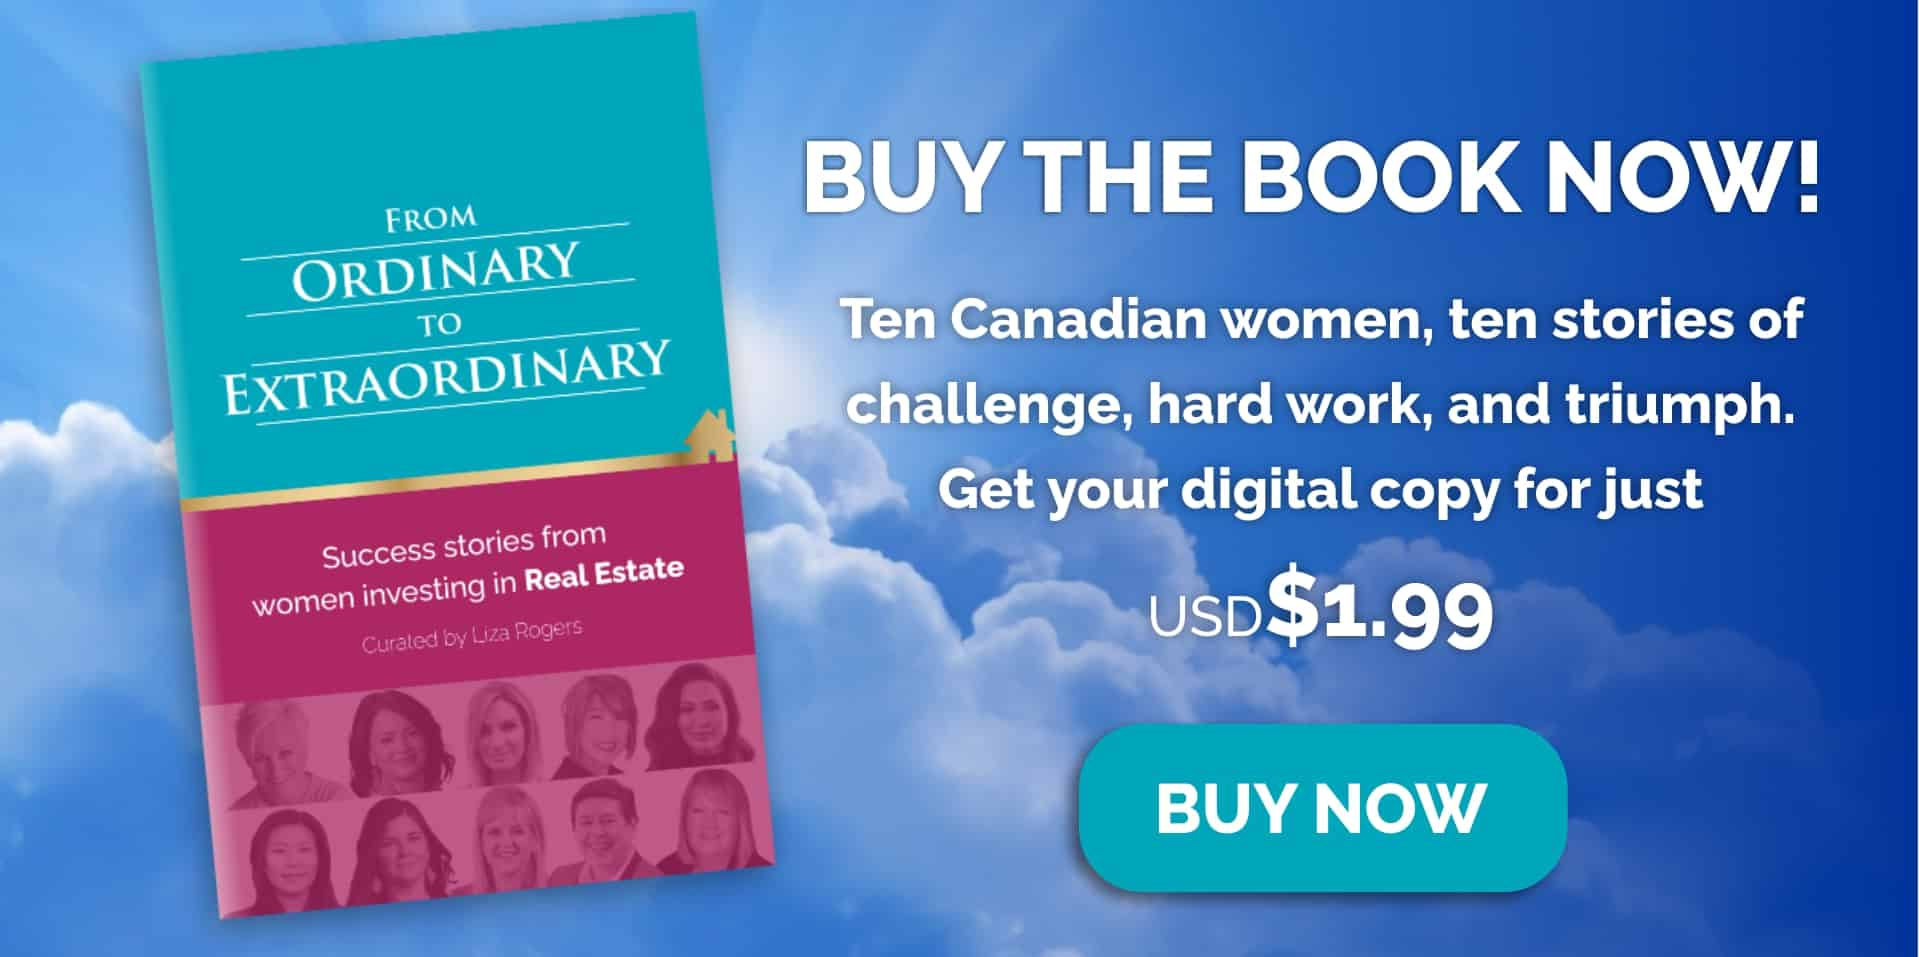 Buy the book now